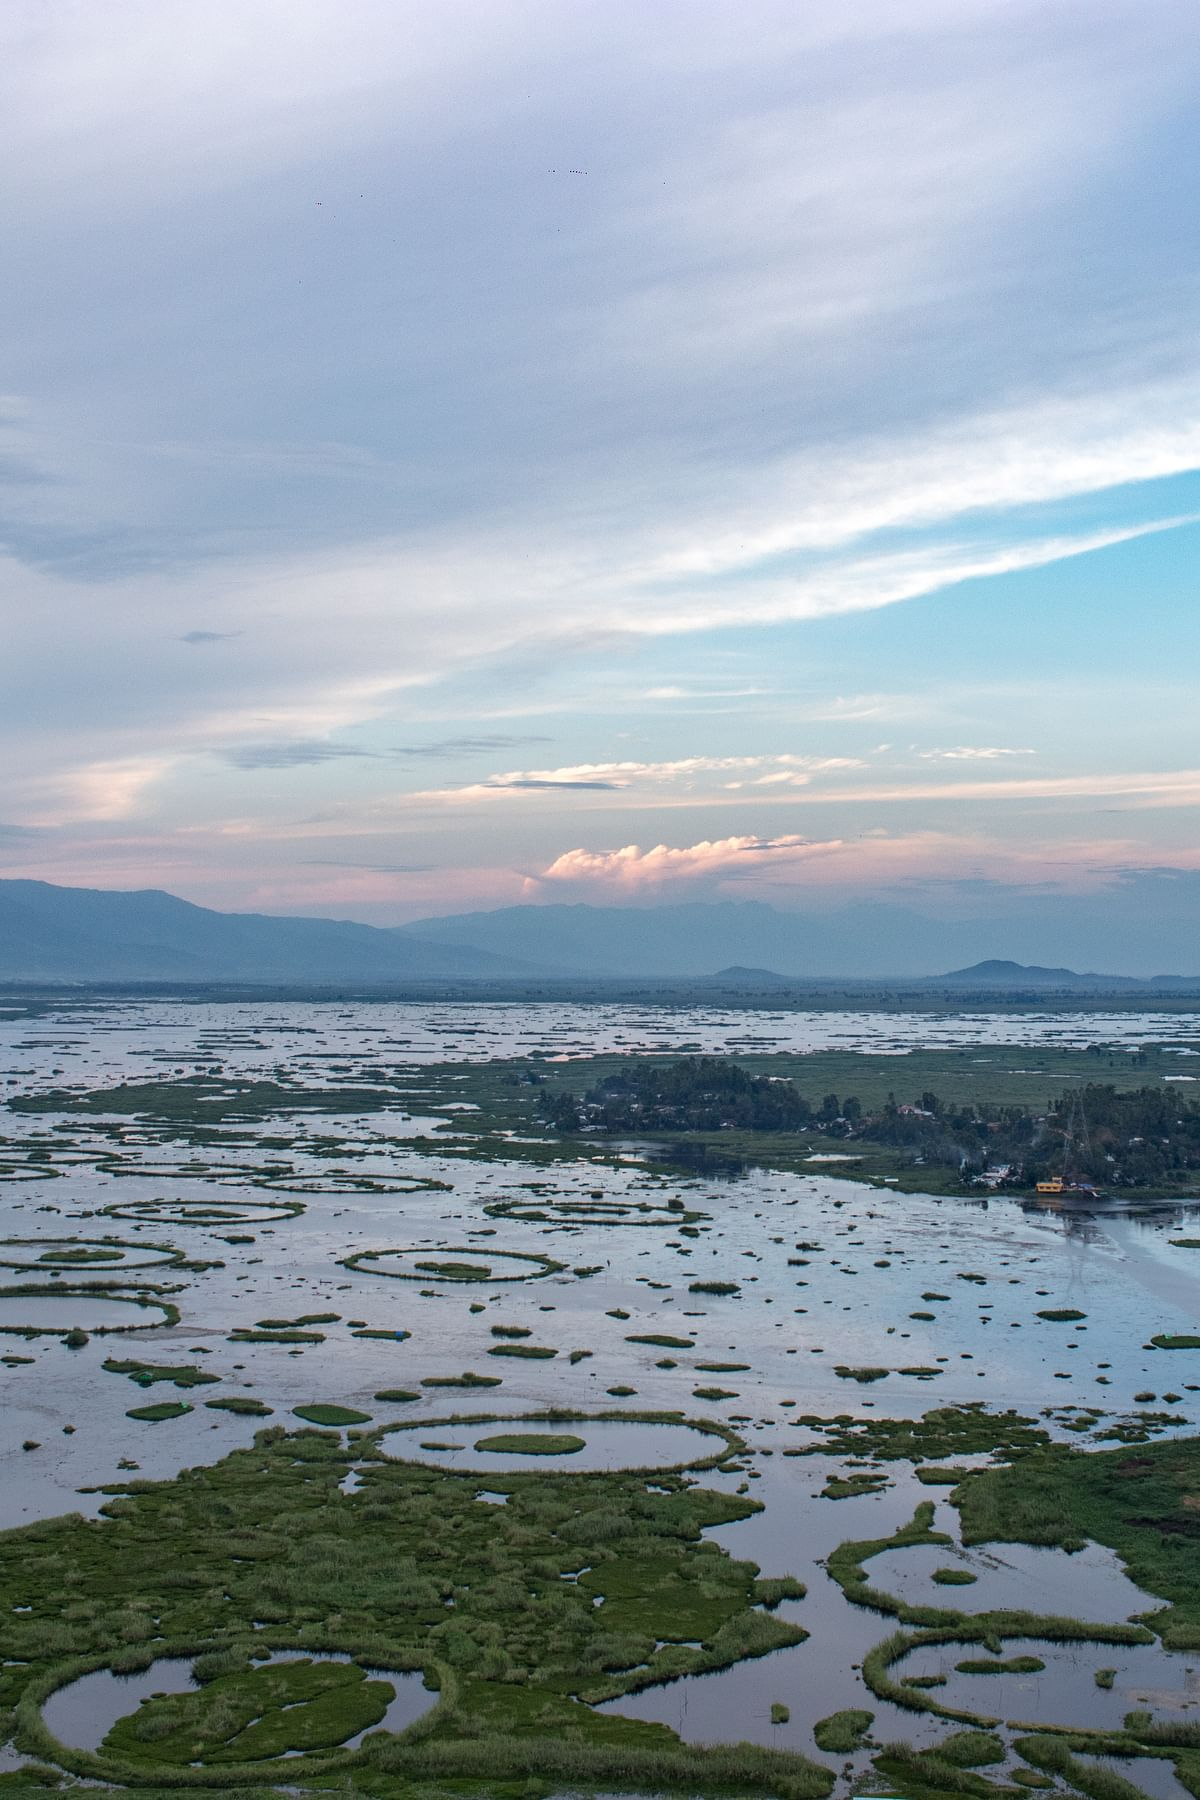 A view of Loktak Lake in Manipur